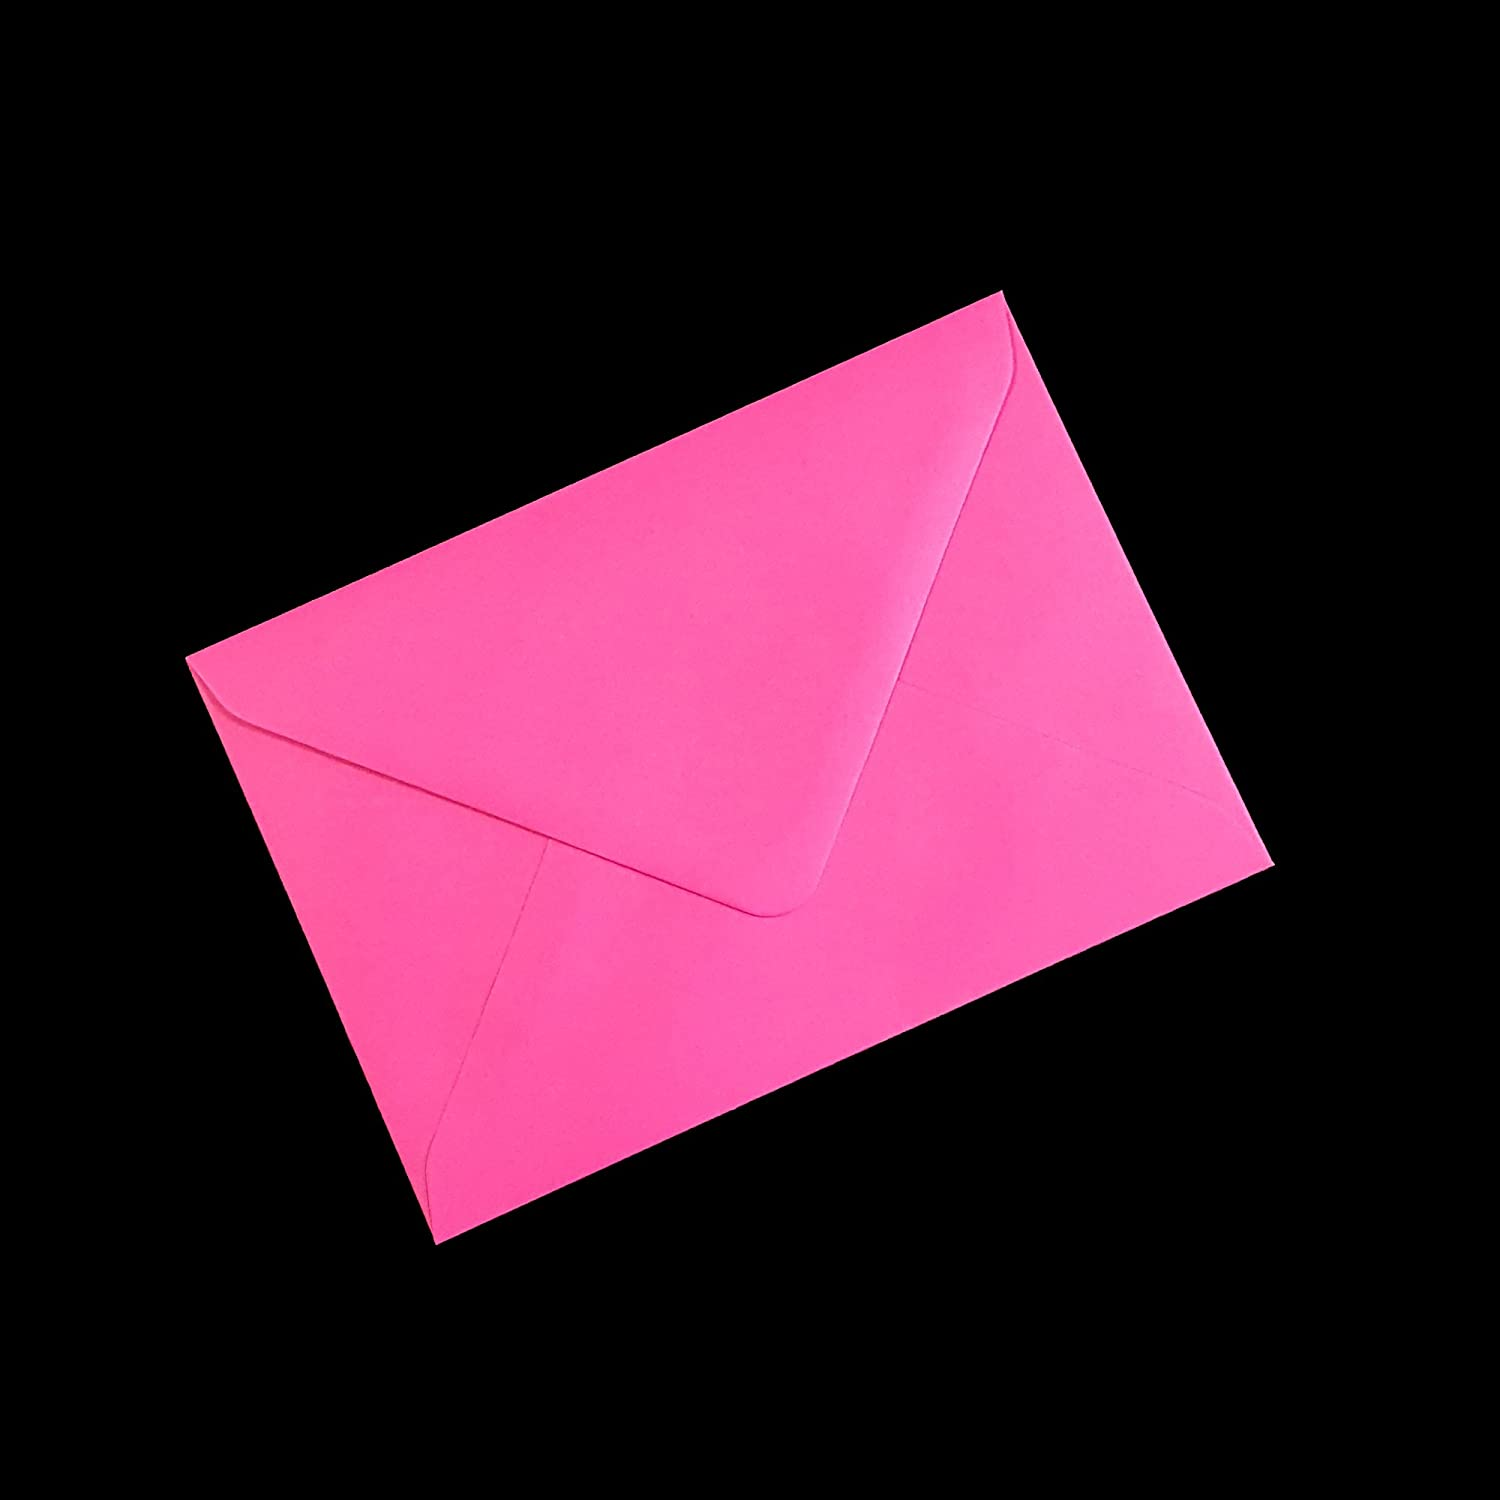 10 DL (110x220mm) Fuschia Pink Coloured Envelopes - Packed by the CandyRushTM Charity - (approx. 4x8.5